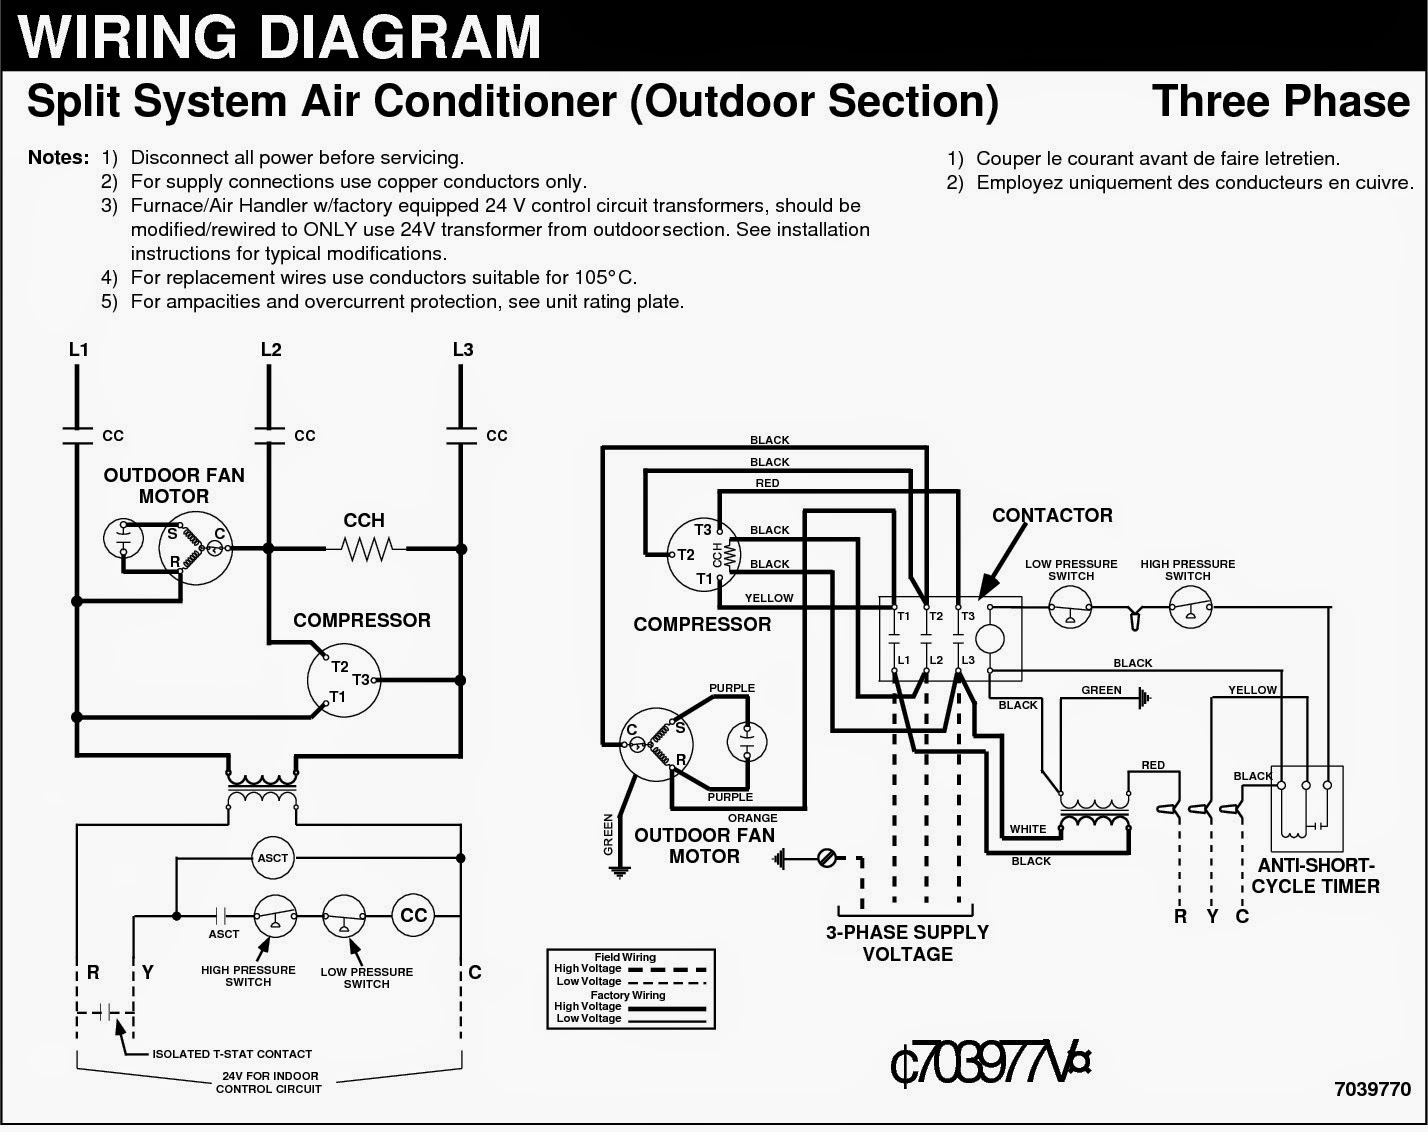 Auto Air Conditioning Wiring Diagram Pdf Diagrams Basic Car Database Library Compressor